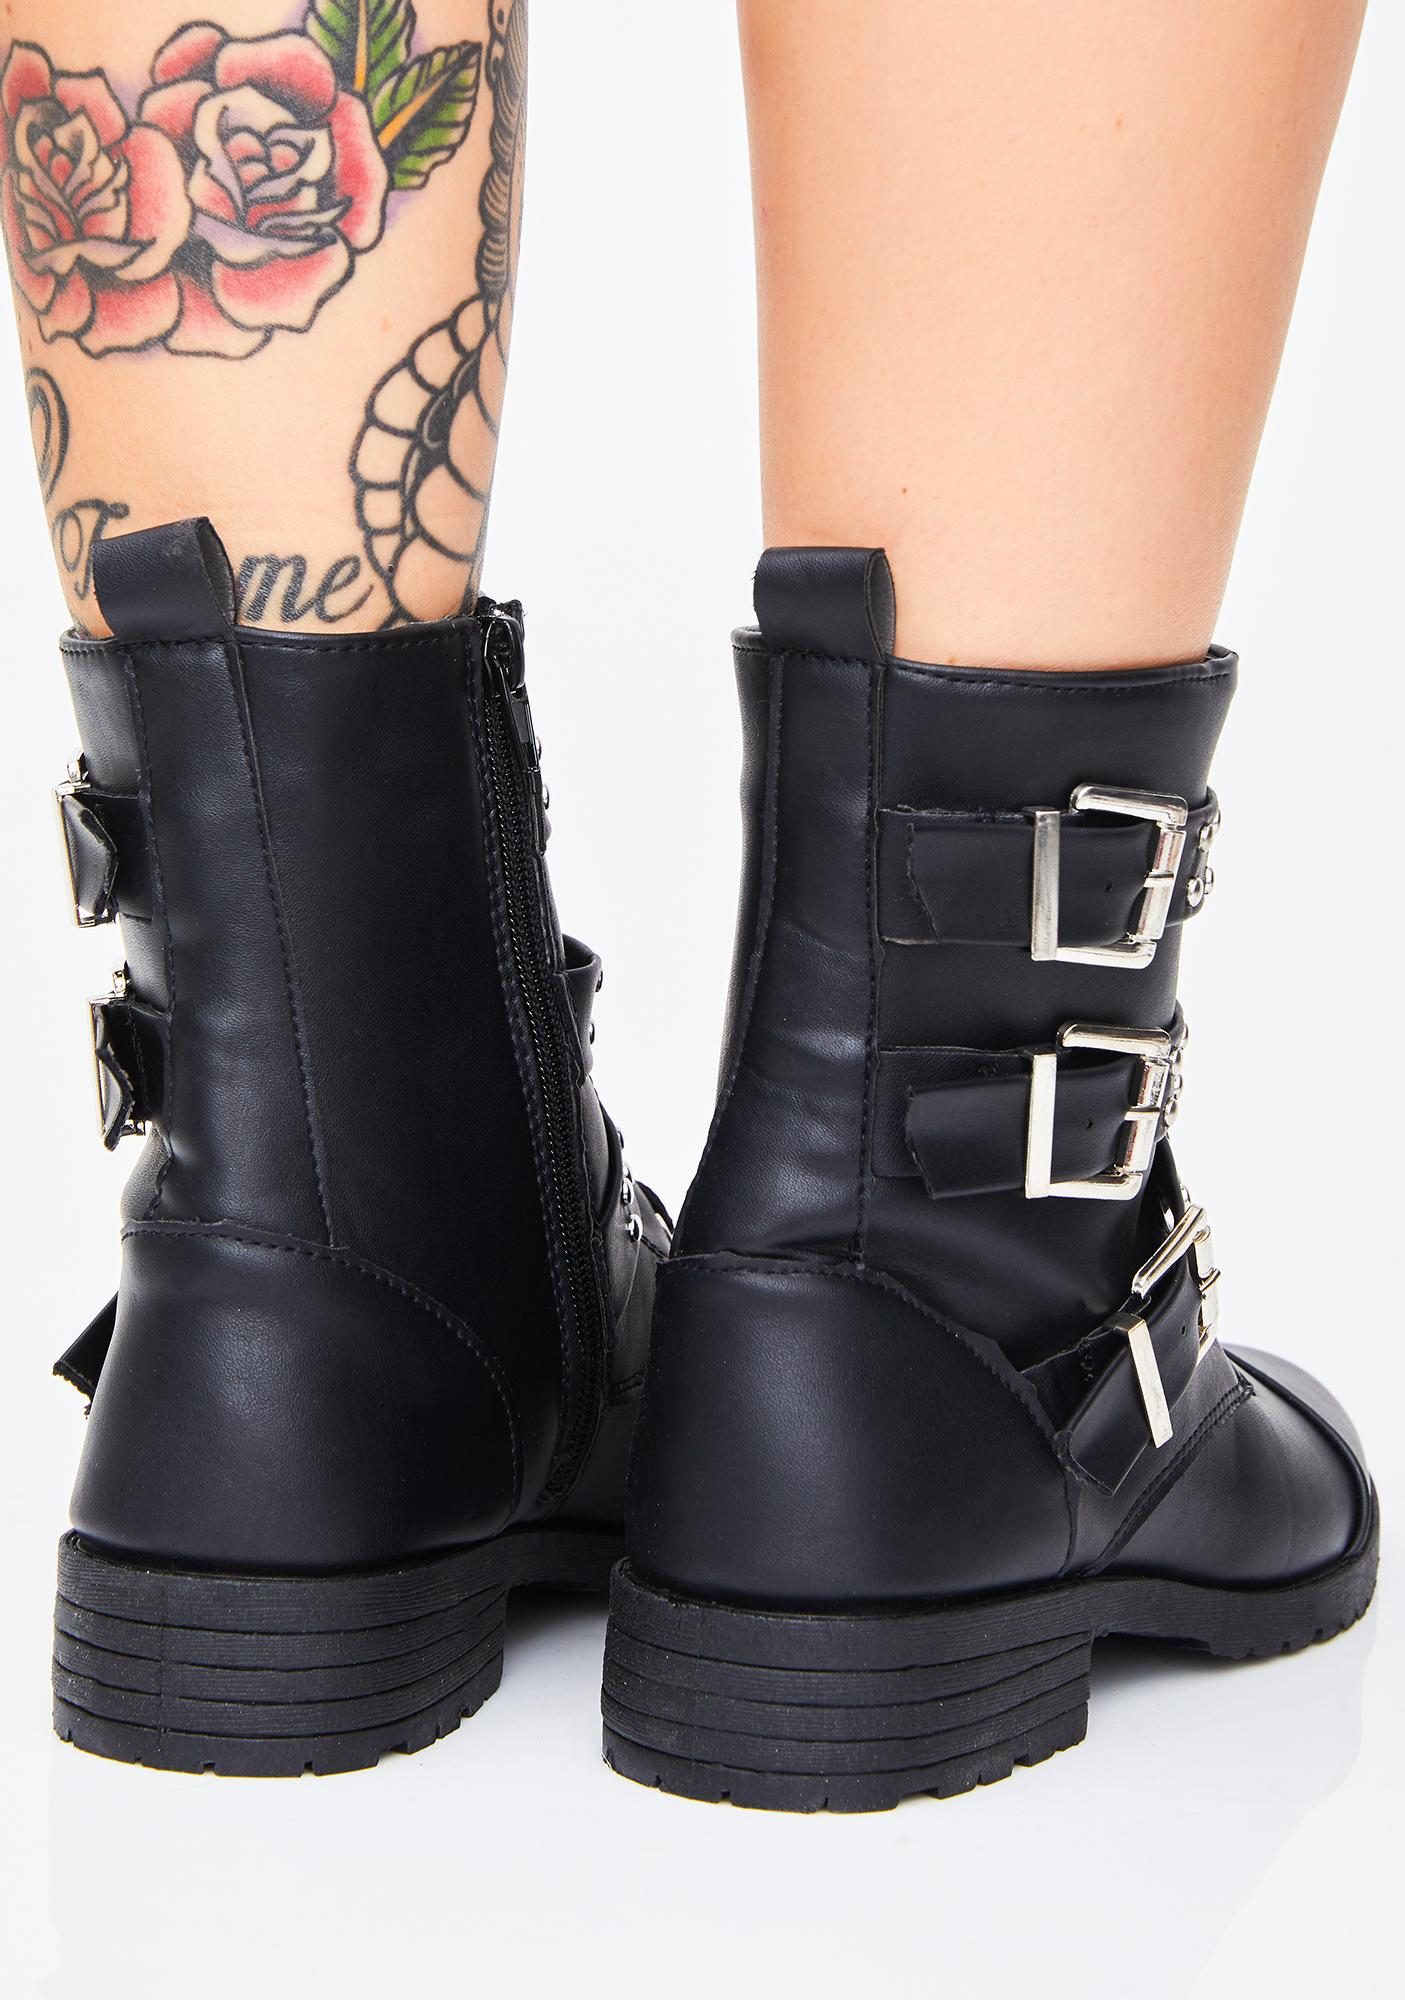 Punk Credibility Ankle Boots